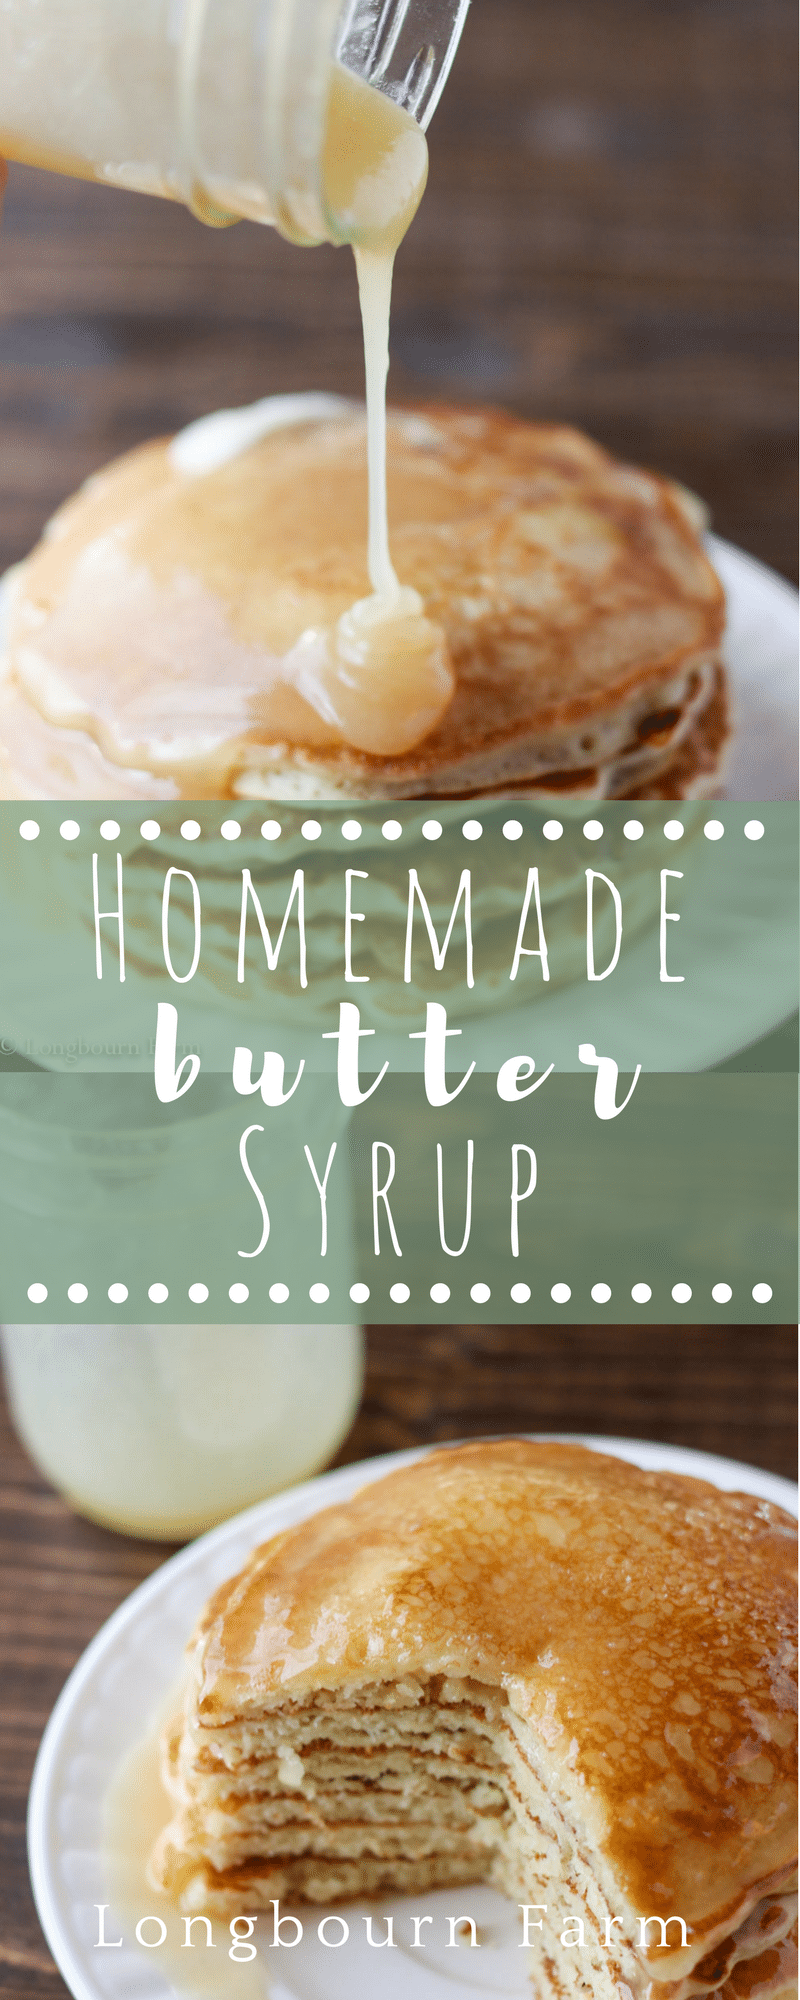 Homemade syrup is easy to make and so delicious! This recipe turns out every time. It's buttery, and thick and has a unique flavor twist! via @longbournfarm